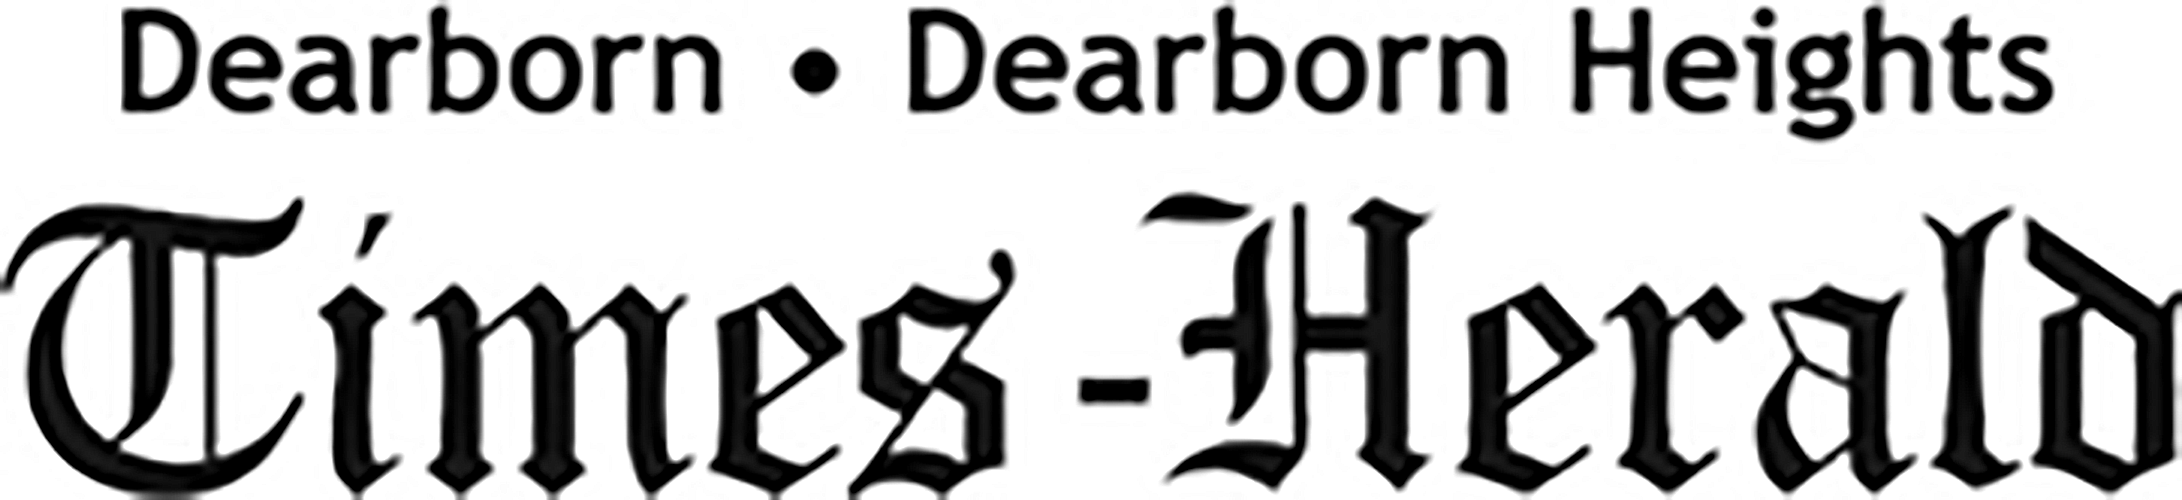 clients-dearborntimes.png